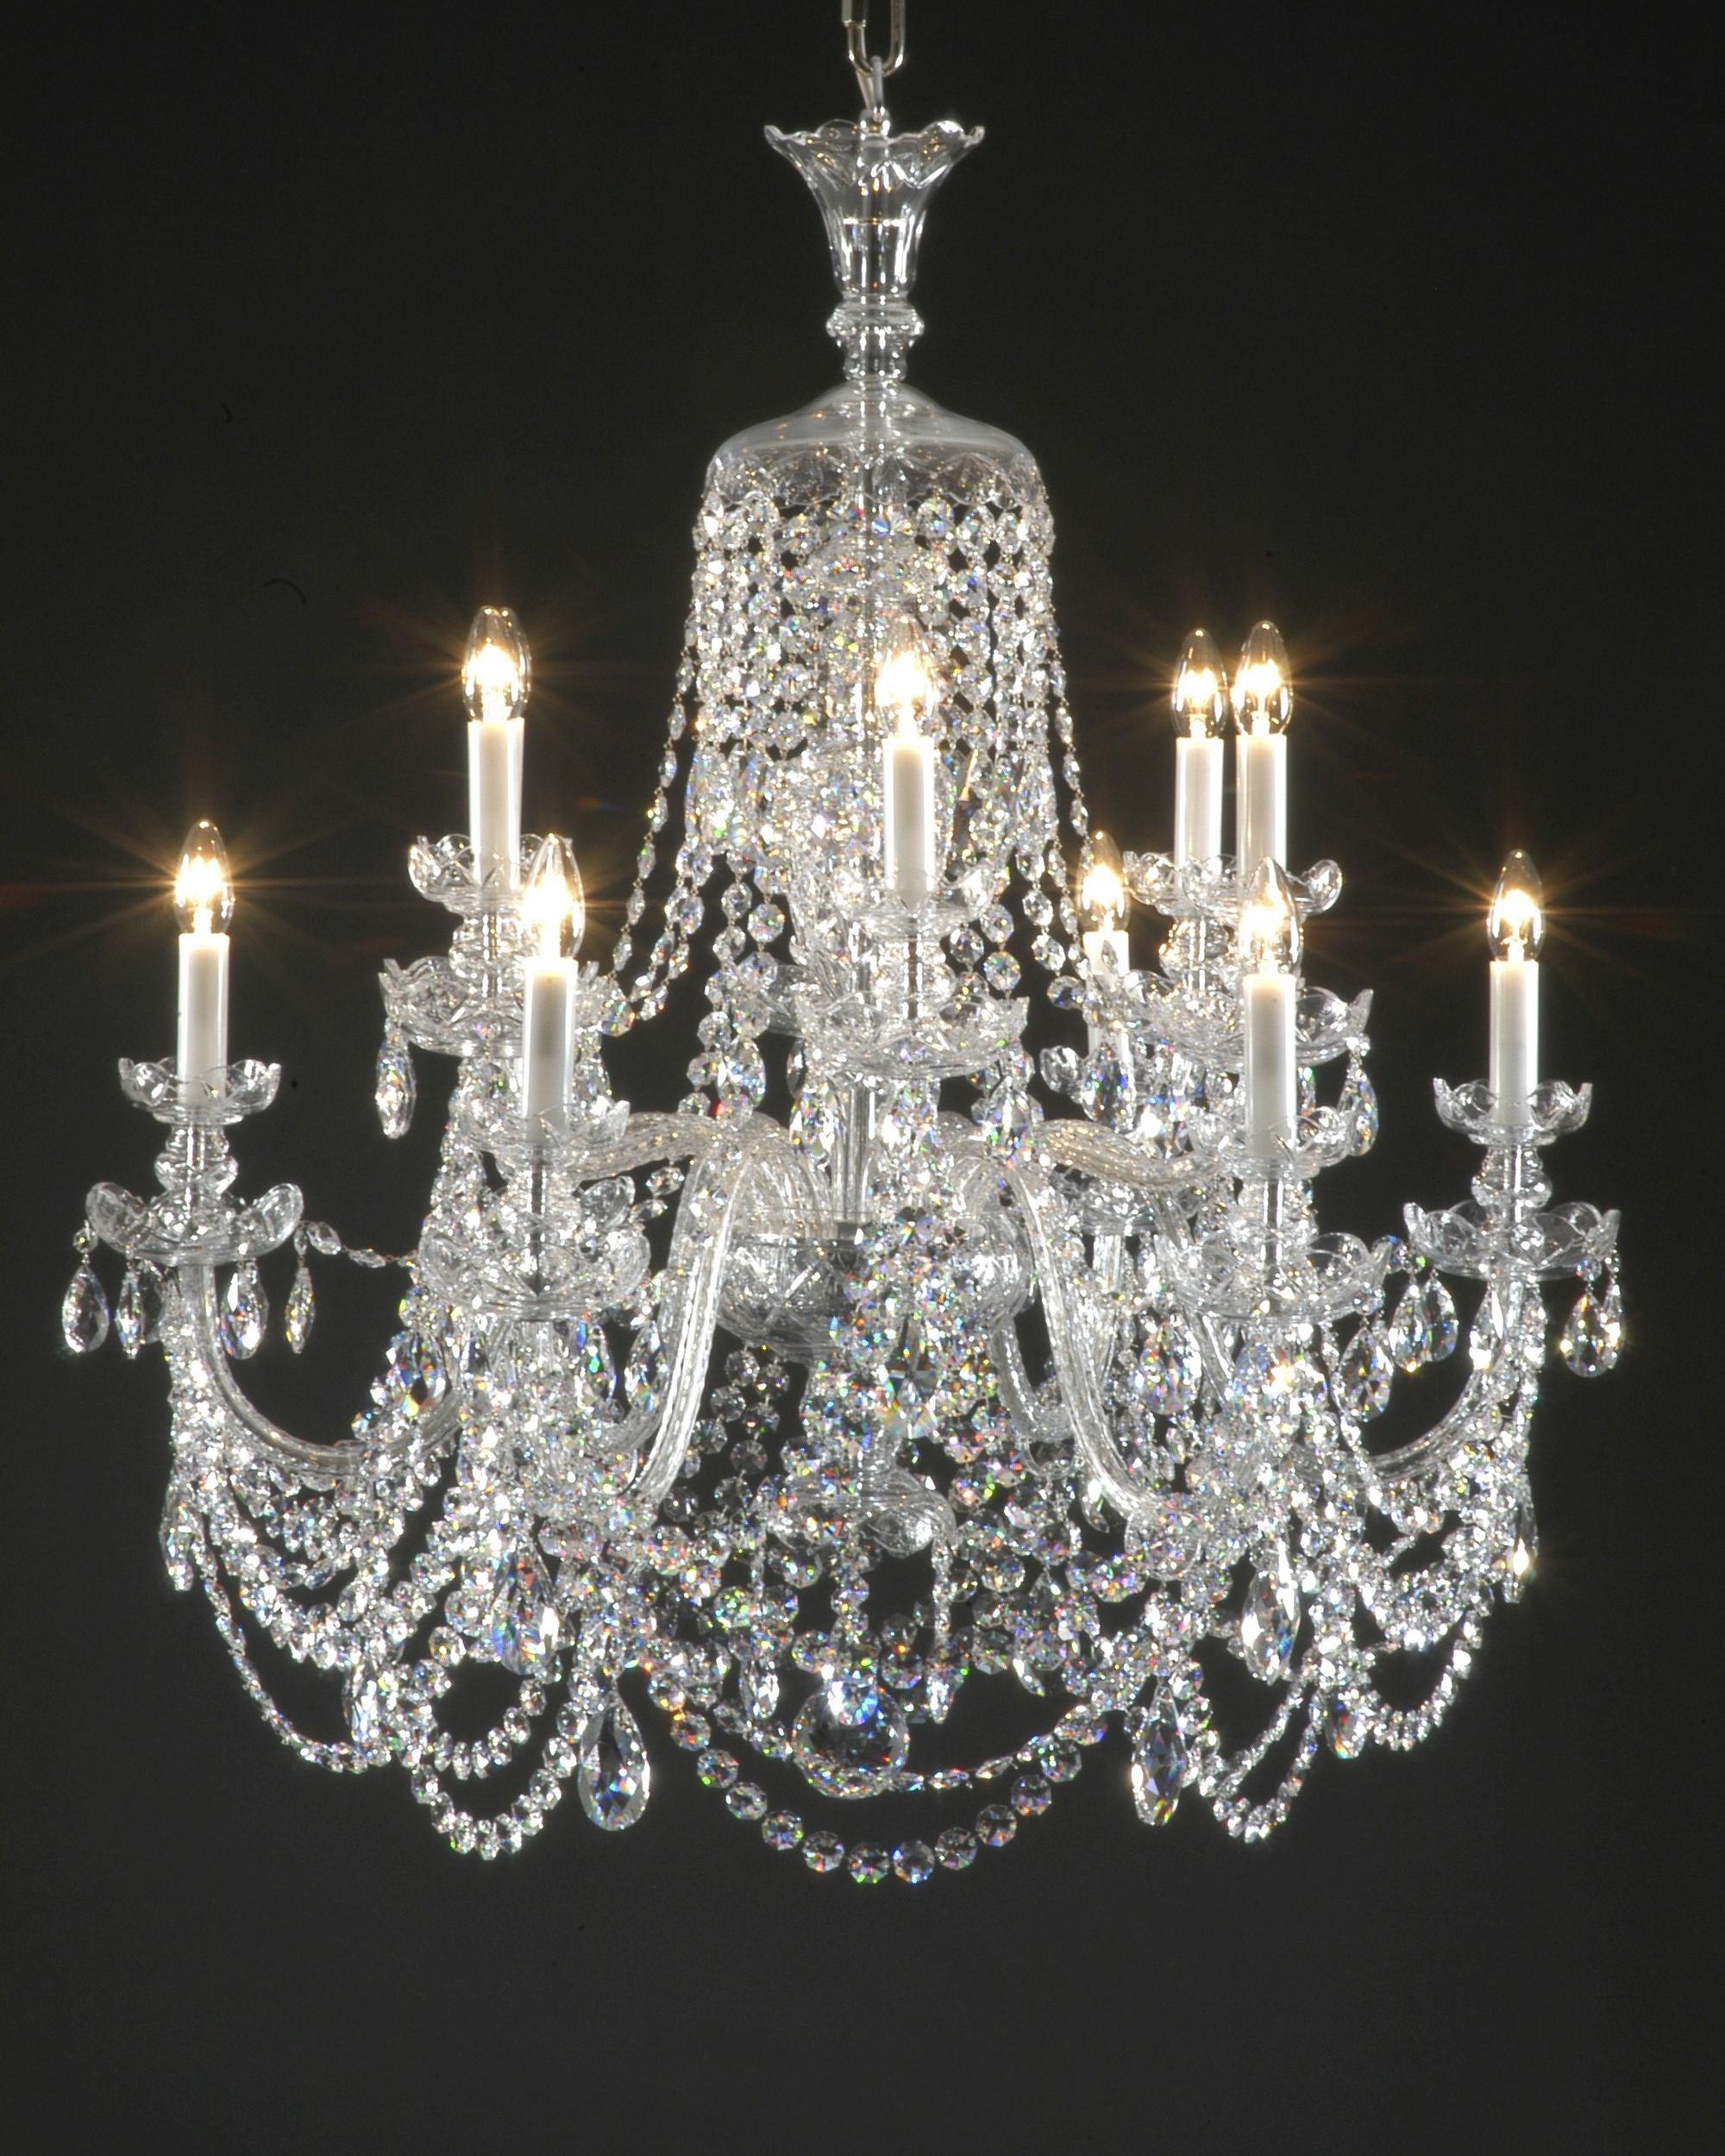 Chandelier with 12 Arms, Swarovski Crystal Dressing